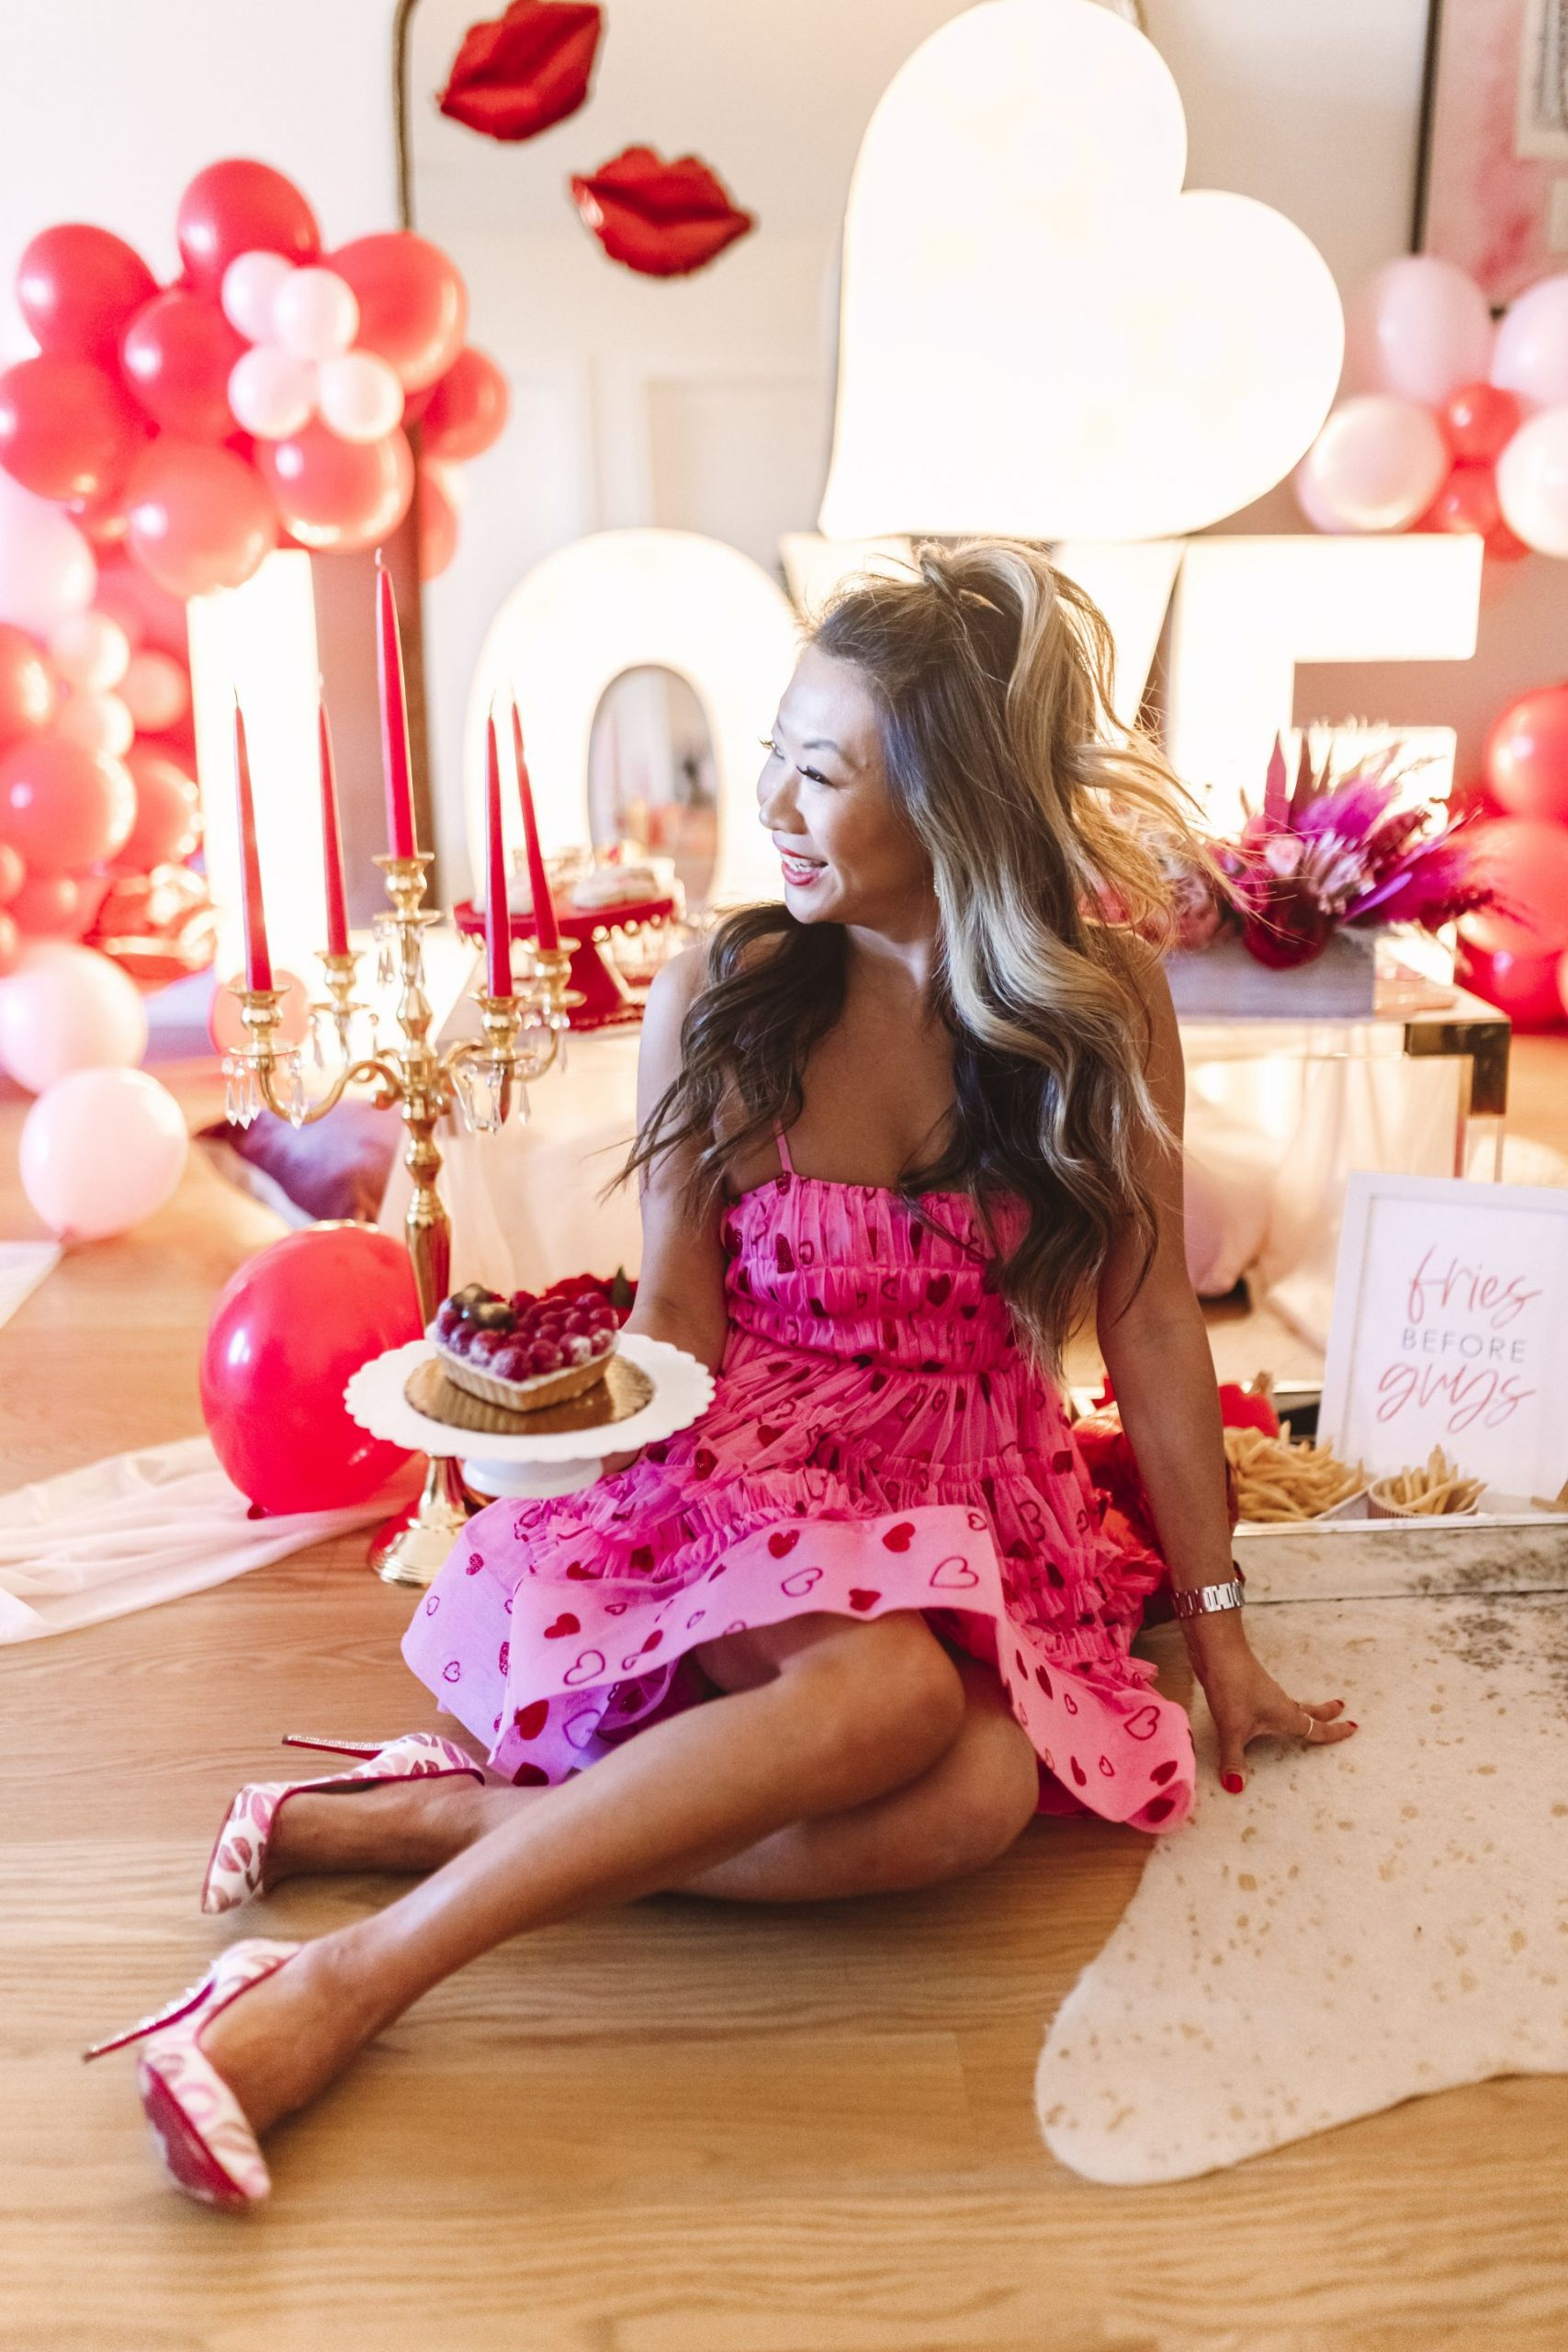 Valentine's Day style, pink vday dress, valentines day dress, galentines day dress, Glam Party Decor Ideas, Galentine's party decor, Valentine's day party decor, girls night party decor ideas, Vday party decorations, pink and red party theme, girly party theme decor, love party theme decor, valentines day party ideas, valentines day party ideas for adults,  light up marquee letters for parties, Red Soles and Red Wine, Jennifer Worman, AlphaLit Chicago